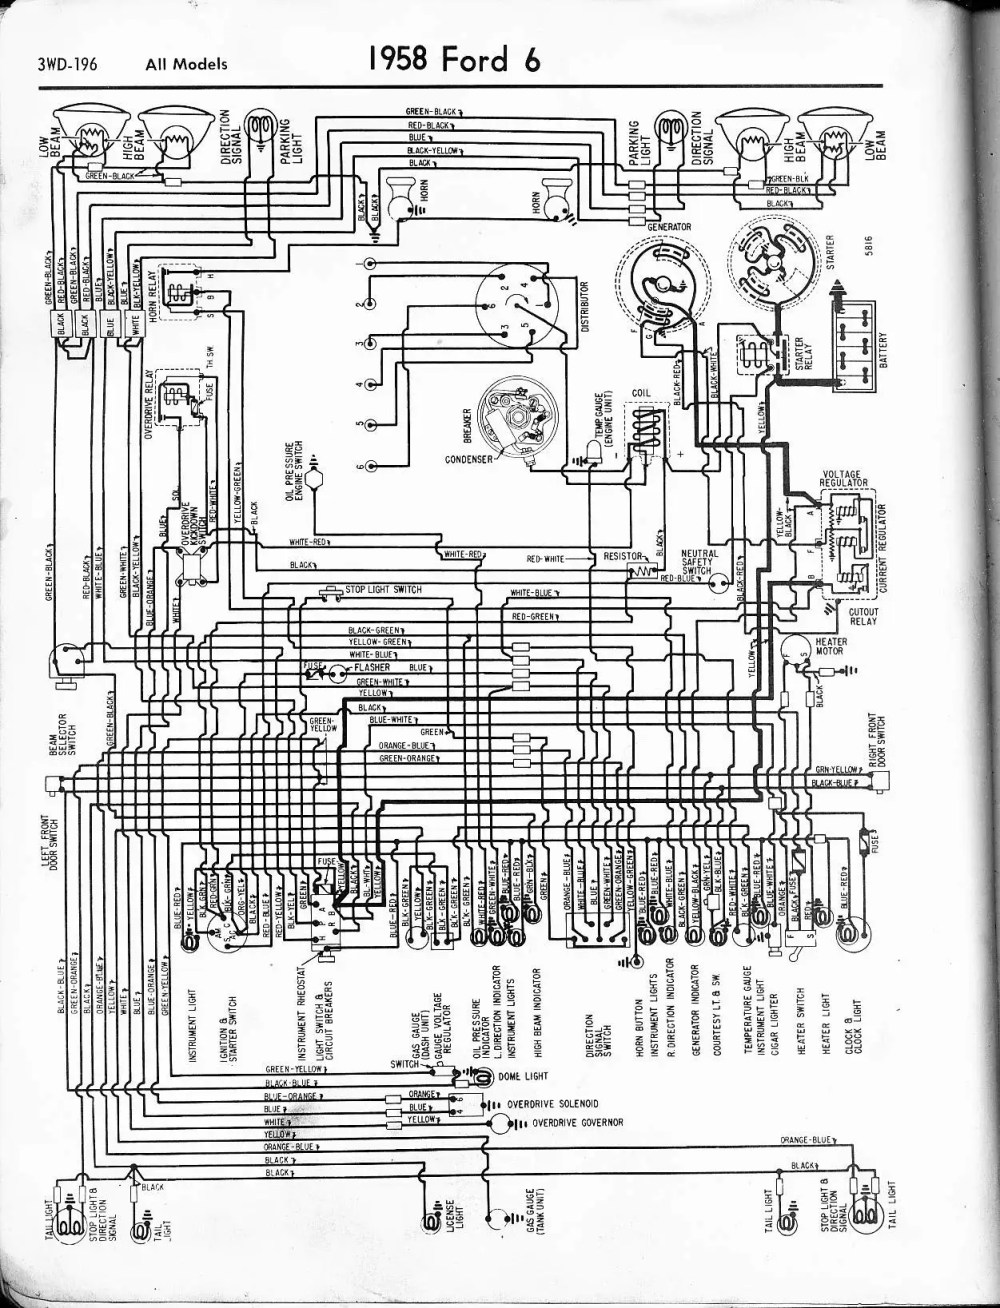 medium resolution of wiring diagram for 1966 ford f600 truck wiring diagram inside alternator wiring diagrams 1991 f600 ford